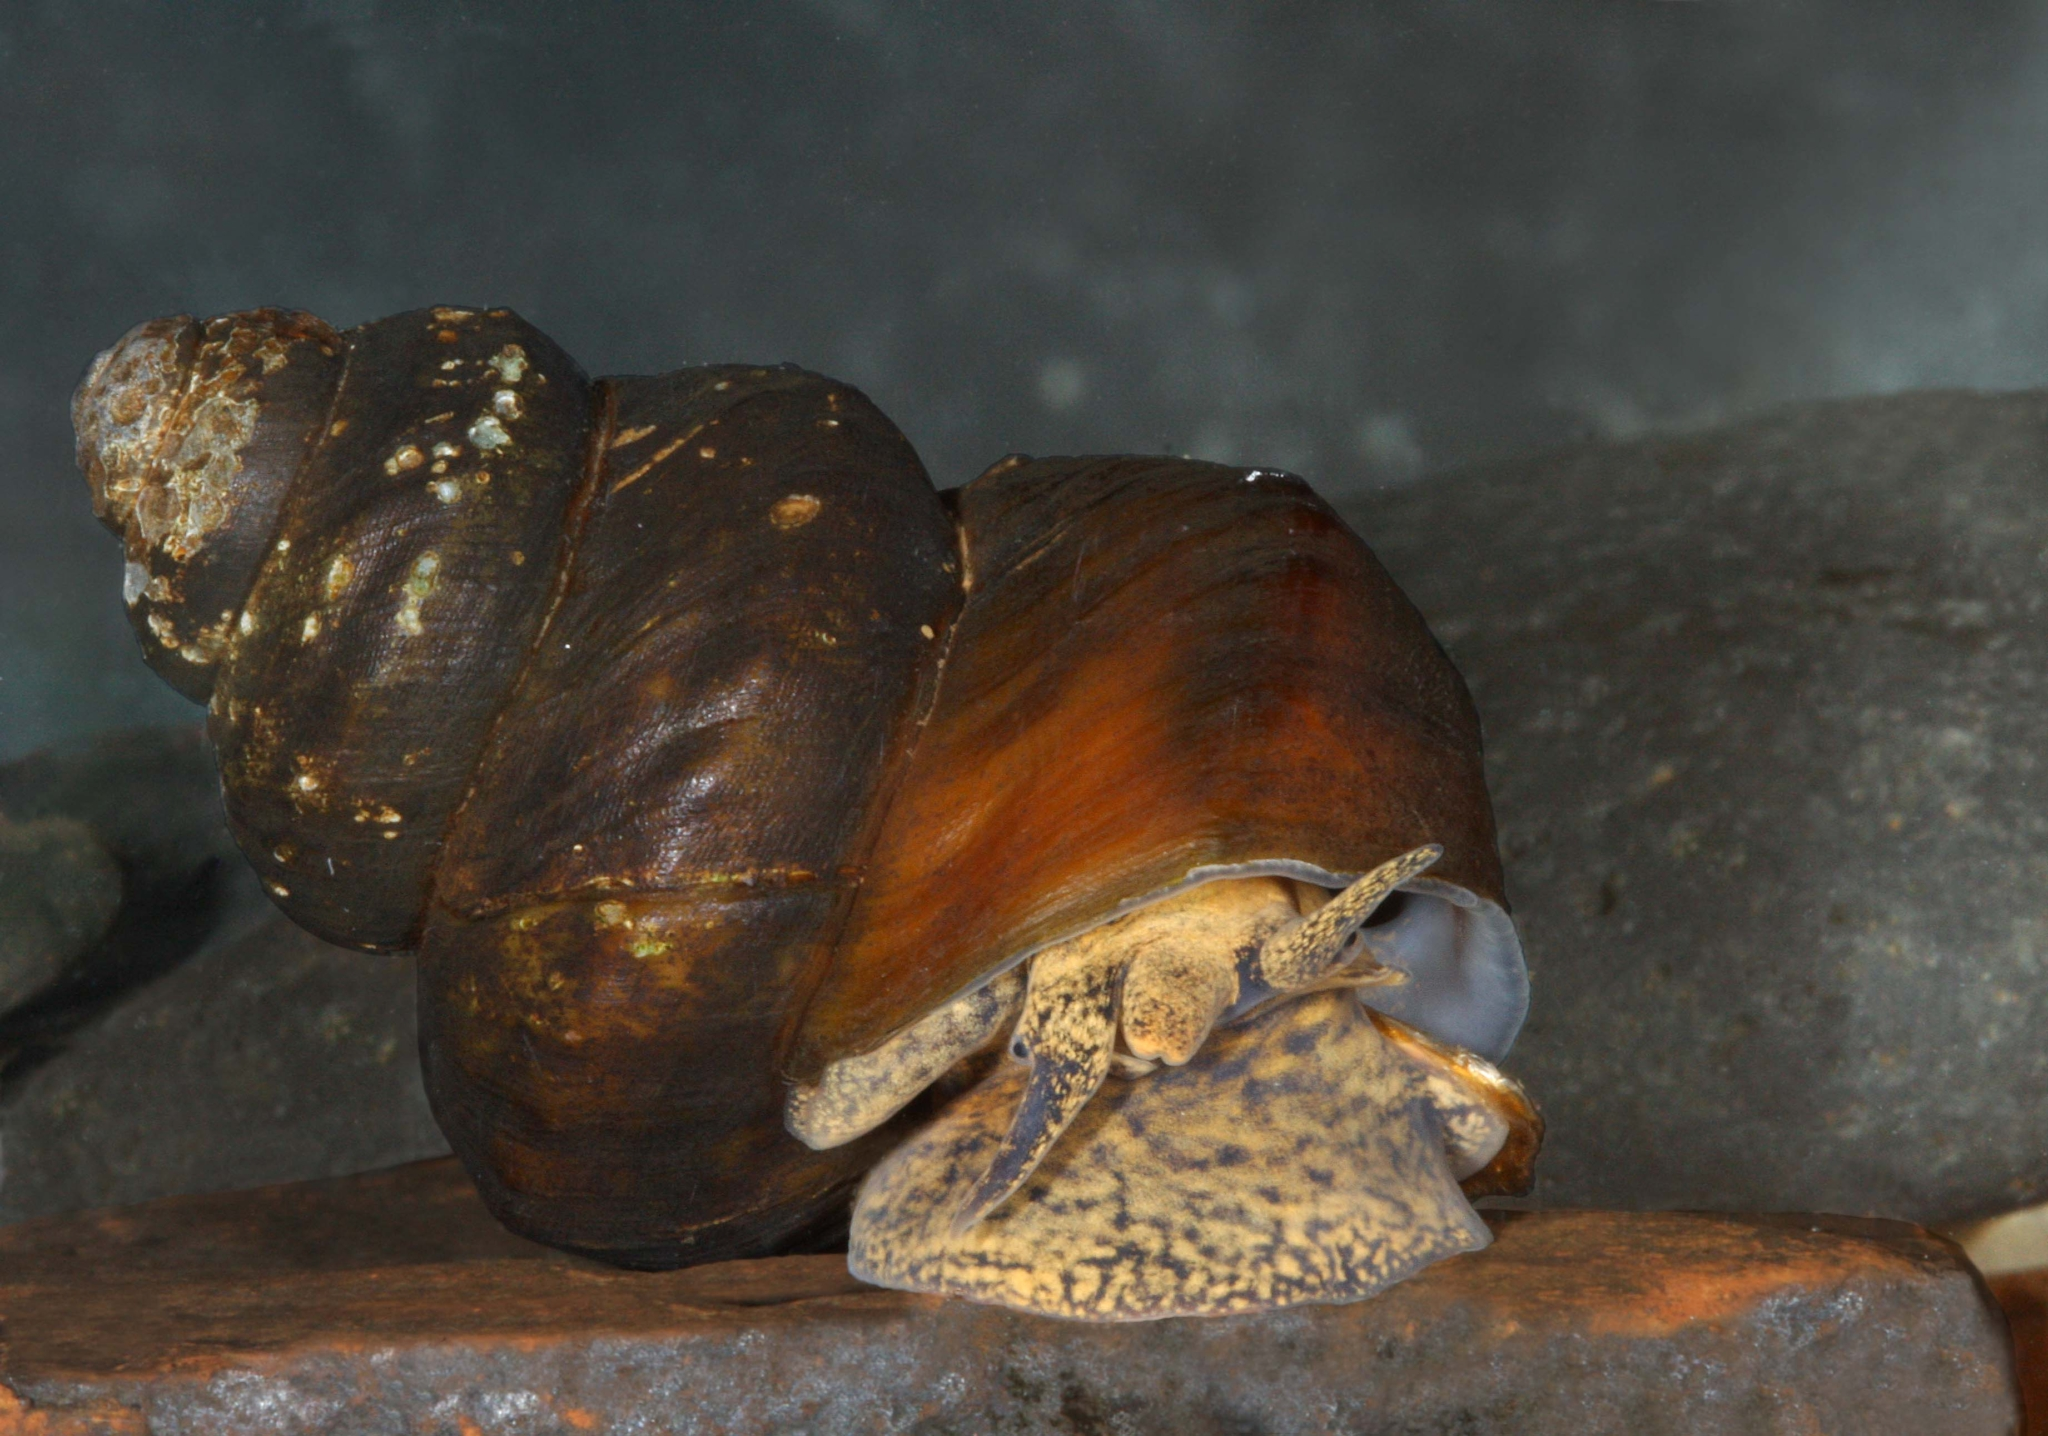 Race to save Alabama's mussels and snails, some of the rarest creatures on Earth